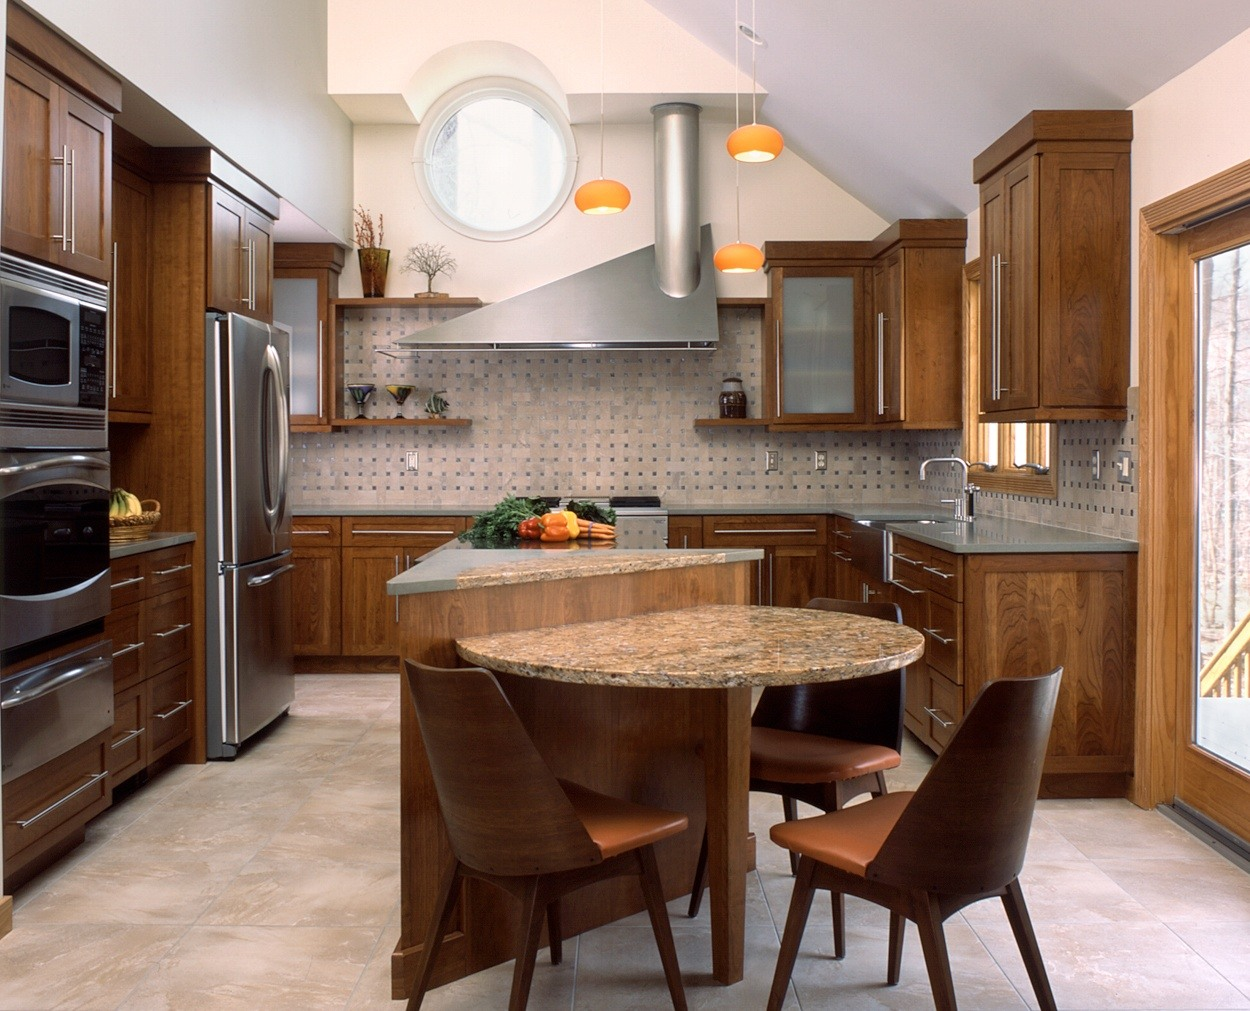 Modern kitchen designed and built by Clark Construction with geometric shapes.